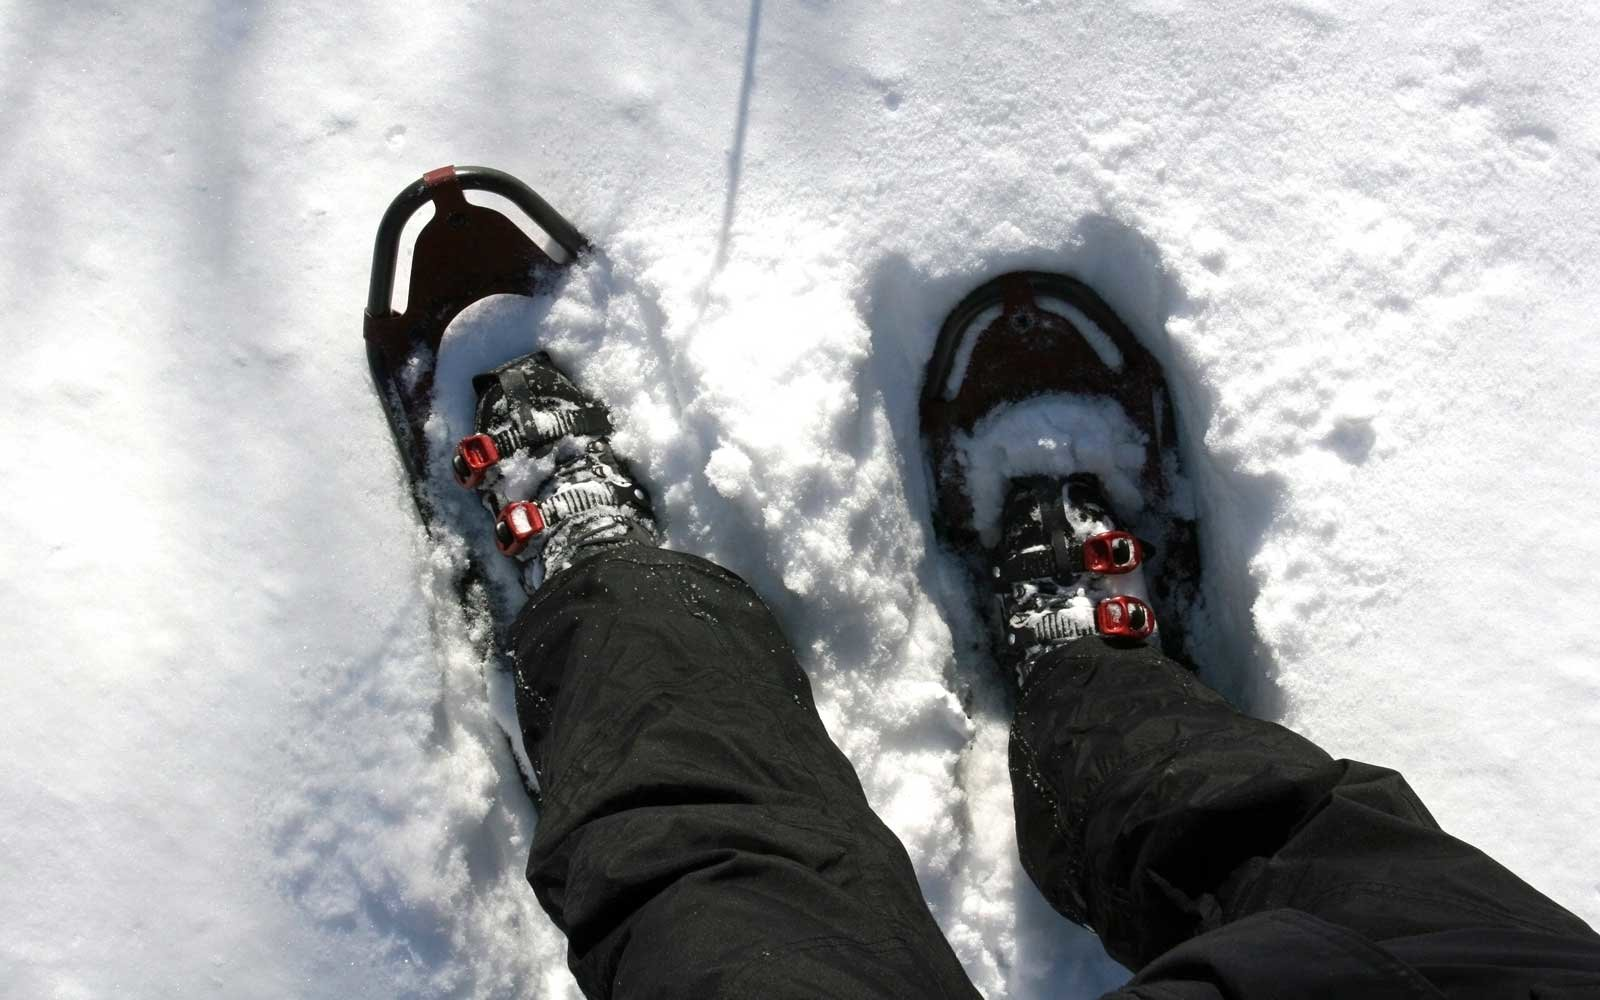 Man wearing high-performance snow shoes